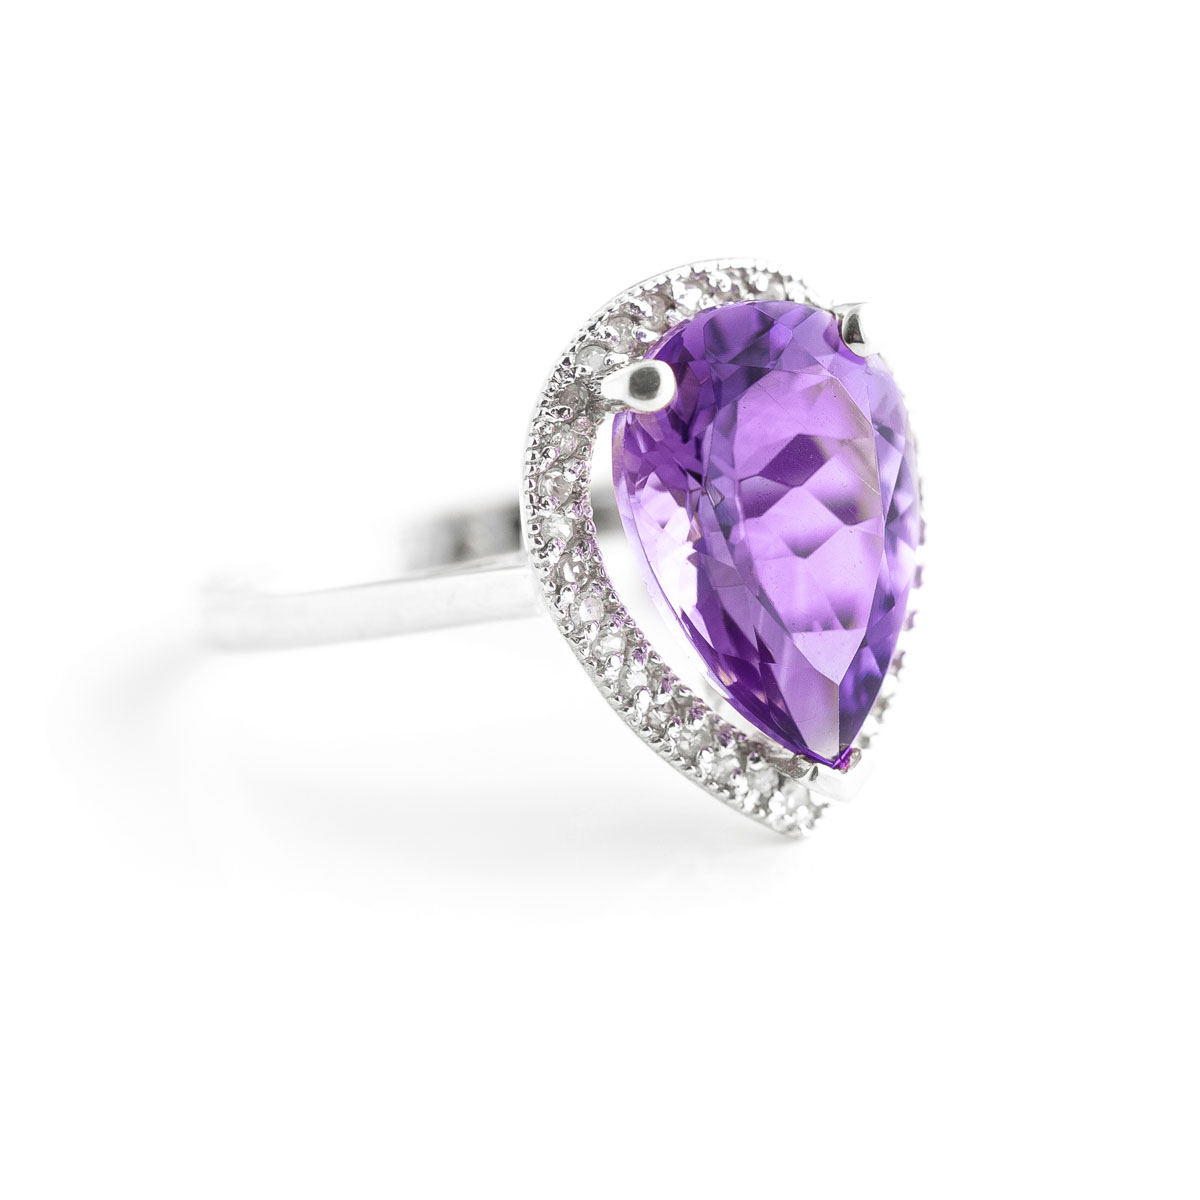 Amethyst Halo Ring 3.41 ctw in 18ct White Gold